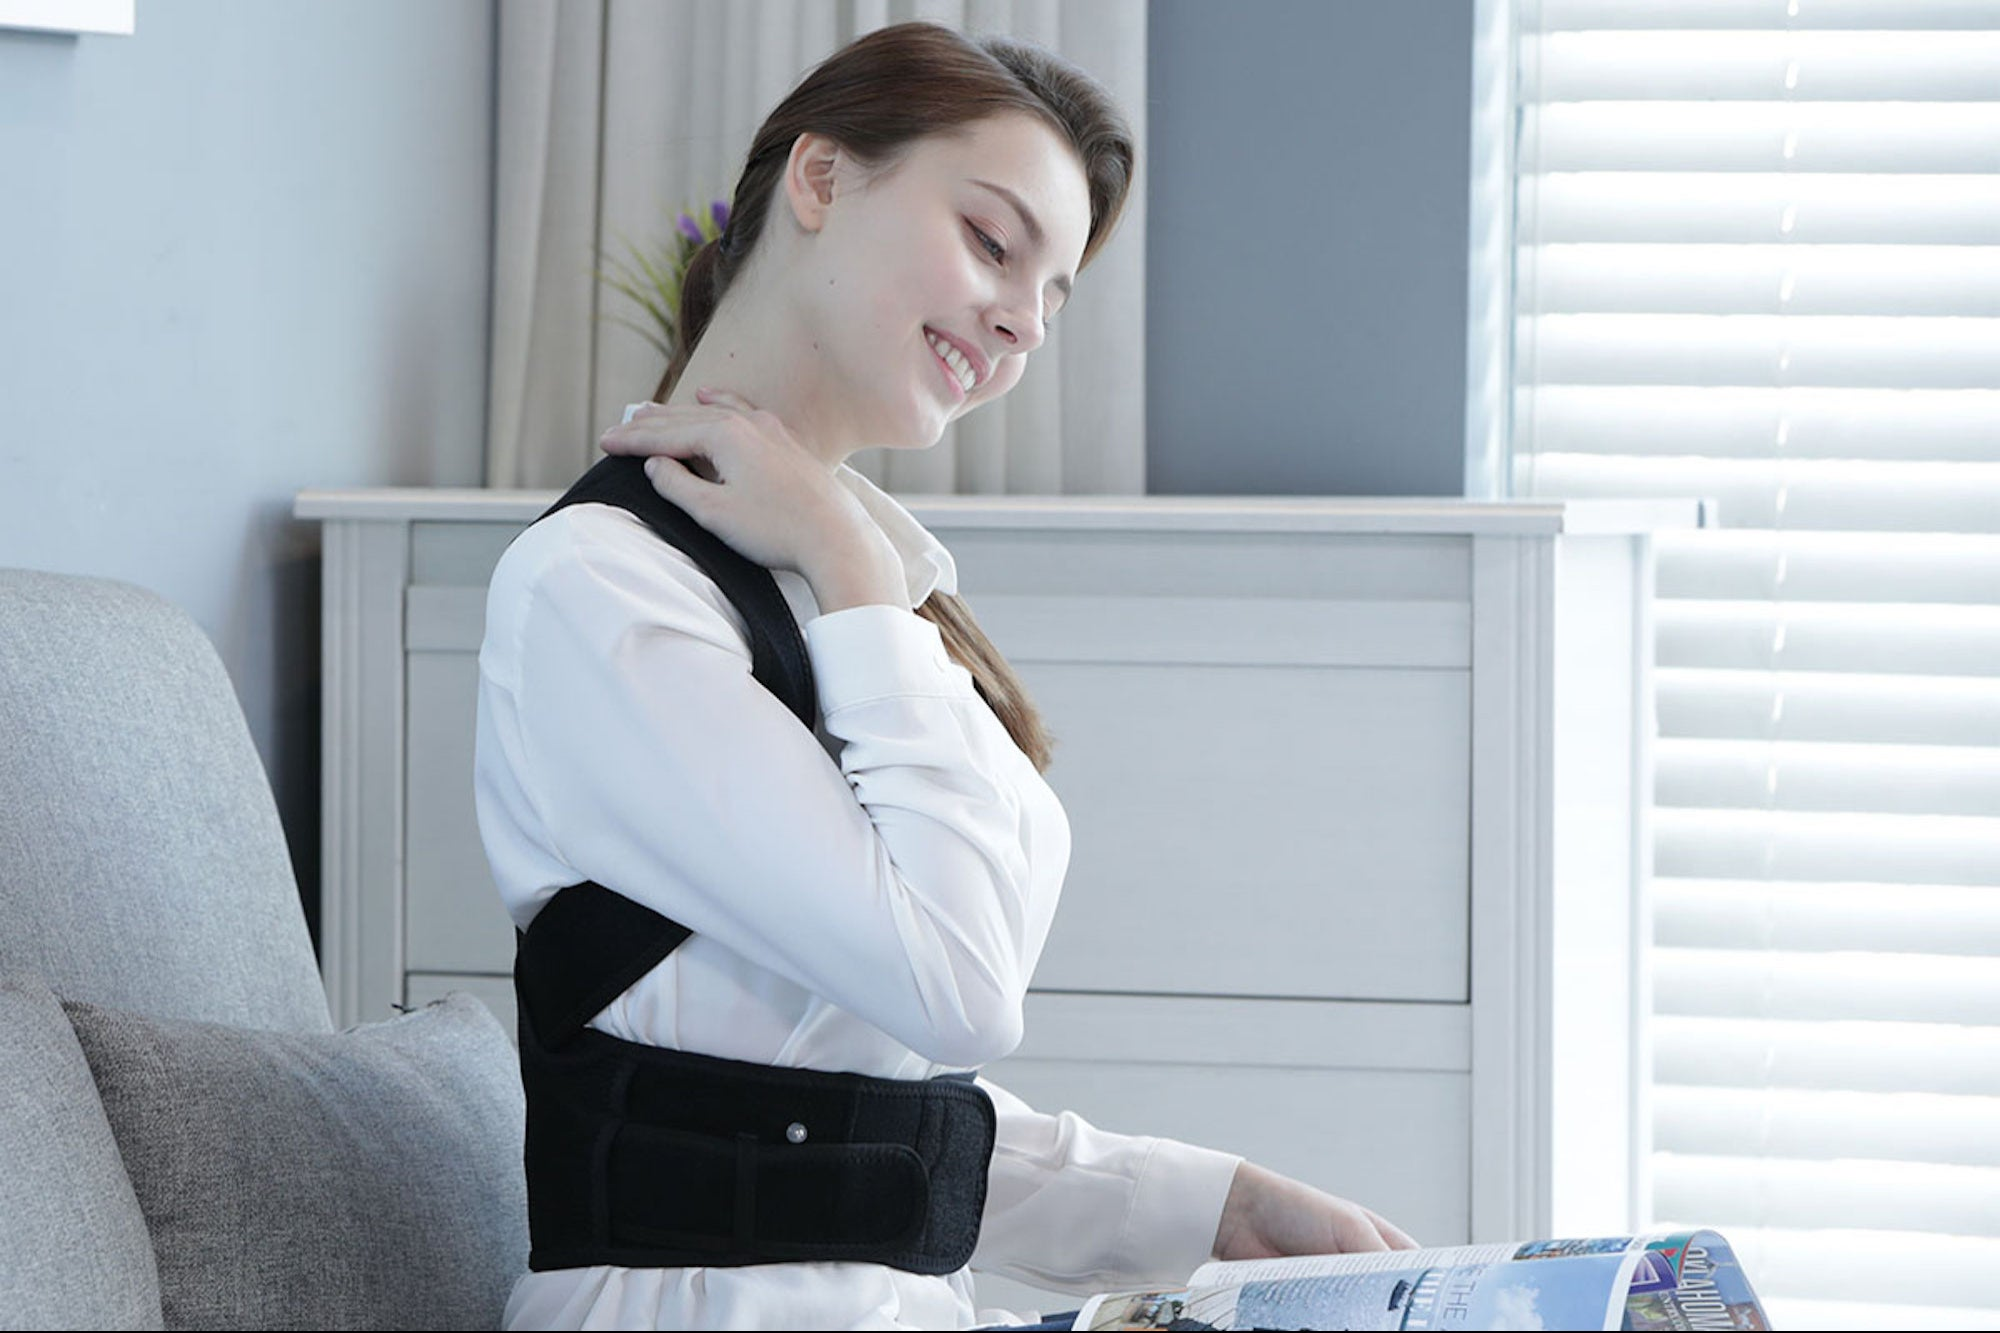 Is Your Posture Impacting Your Productivity? This Might Be the Solution.